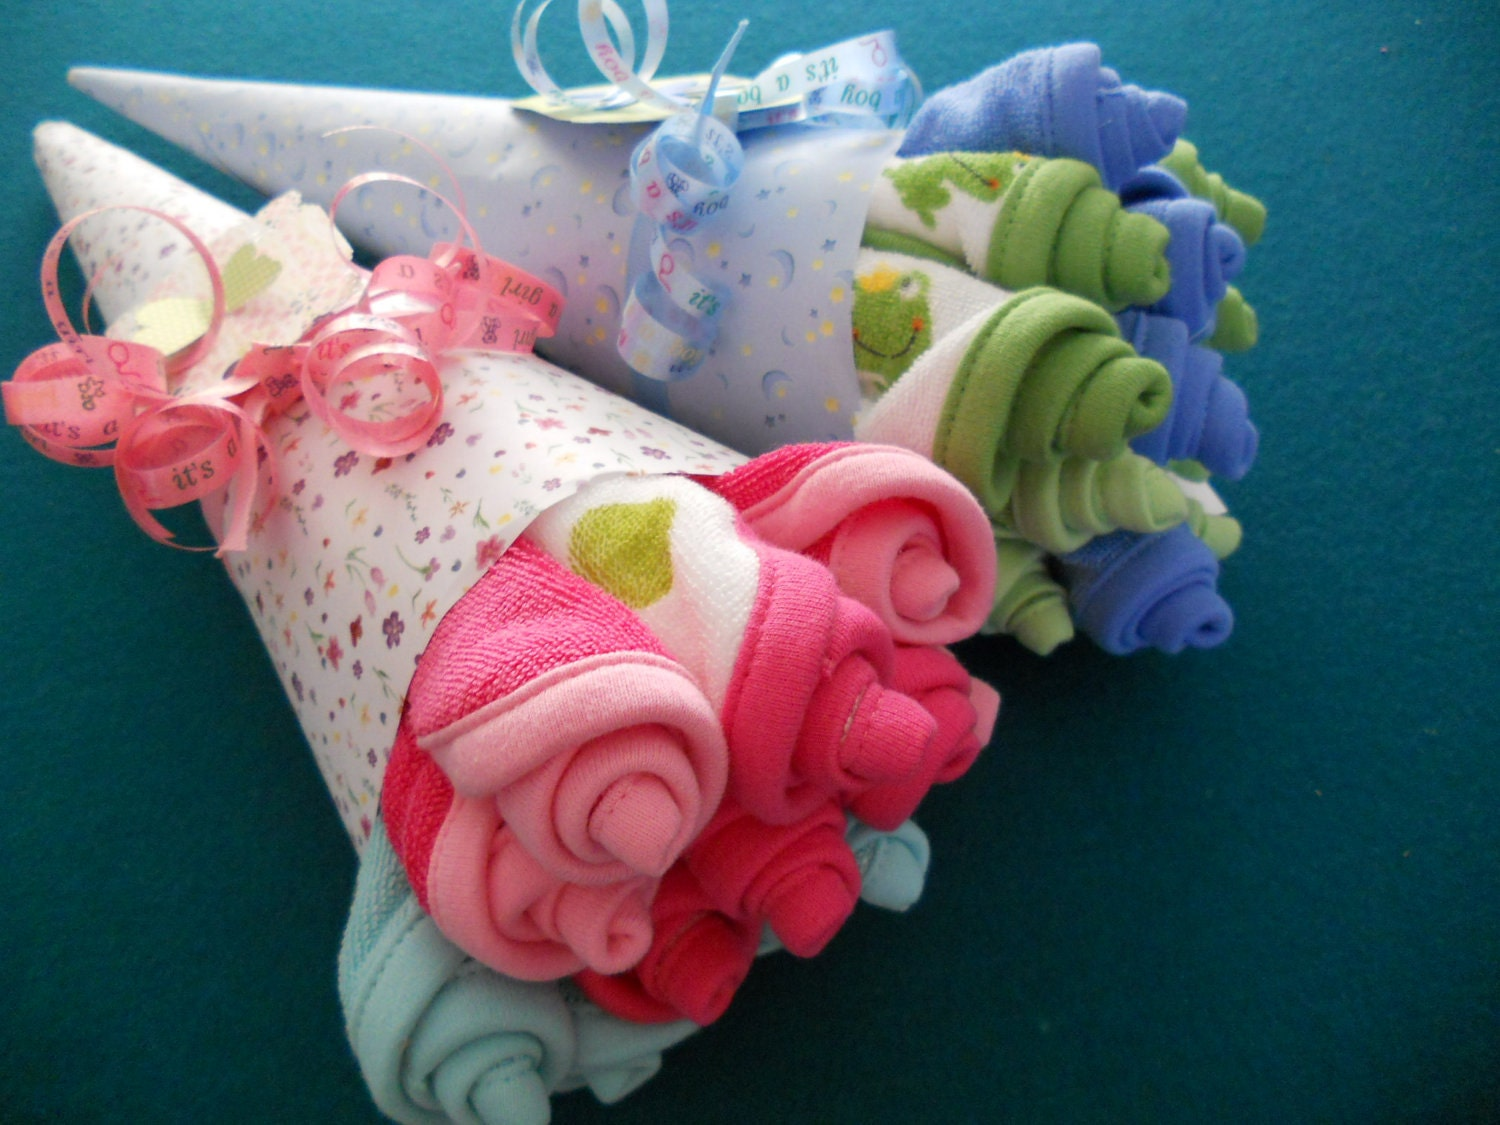 10% Off  Washcloth Rosebud Bouquet / Baby Shower Gift/ Hospital Gift/ Bridal Shower Gift  Available in Boy, Girl, Neutral , Bridal